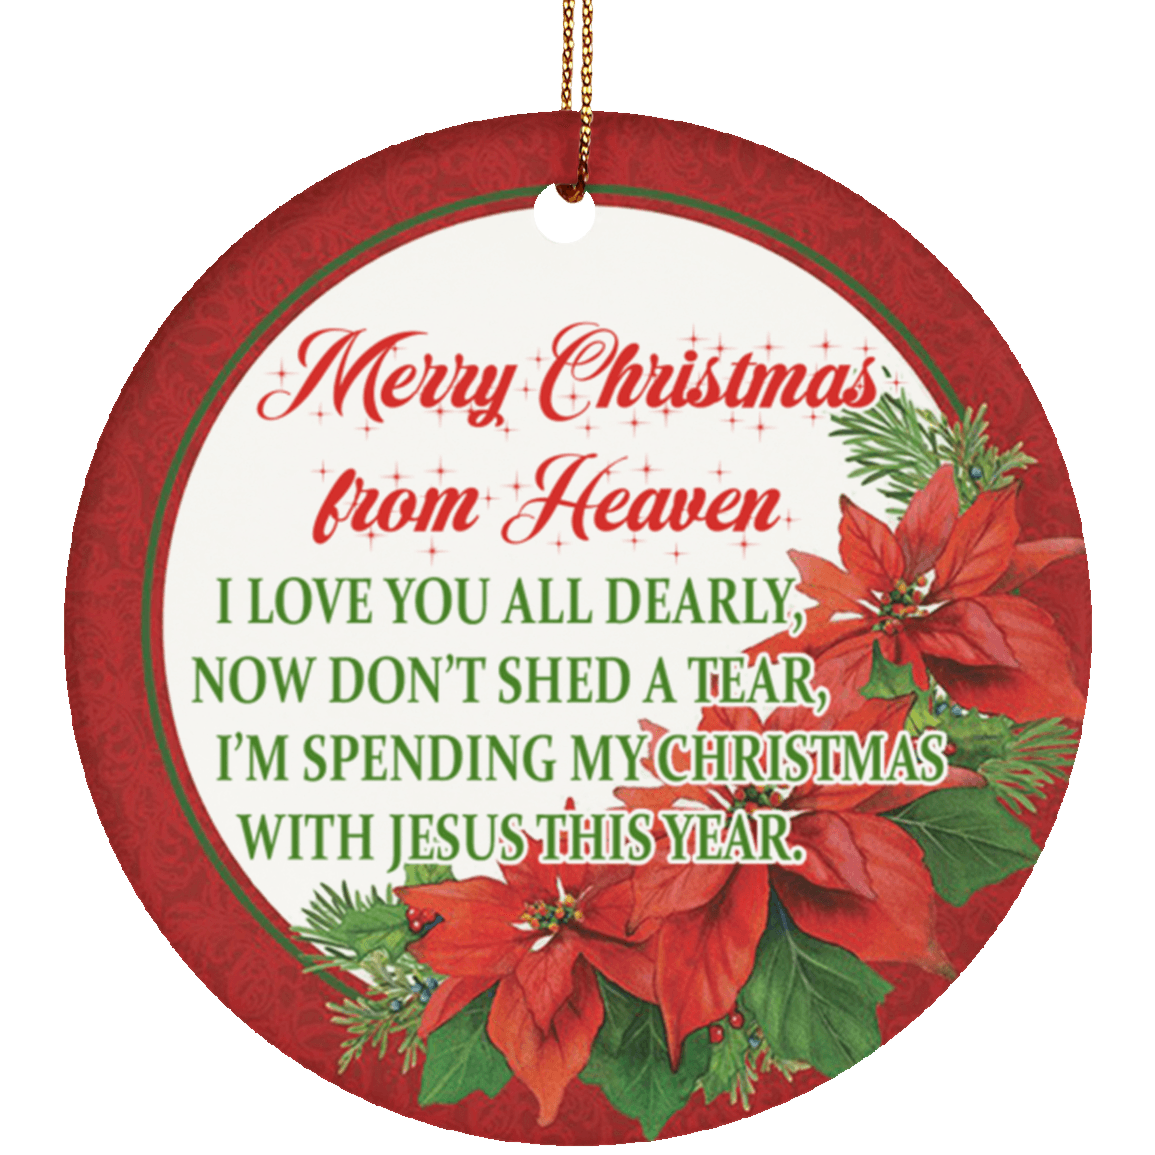 Christmas Ornaments 2019   Merry Christmas From Heaven I ...